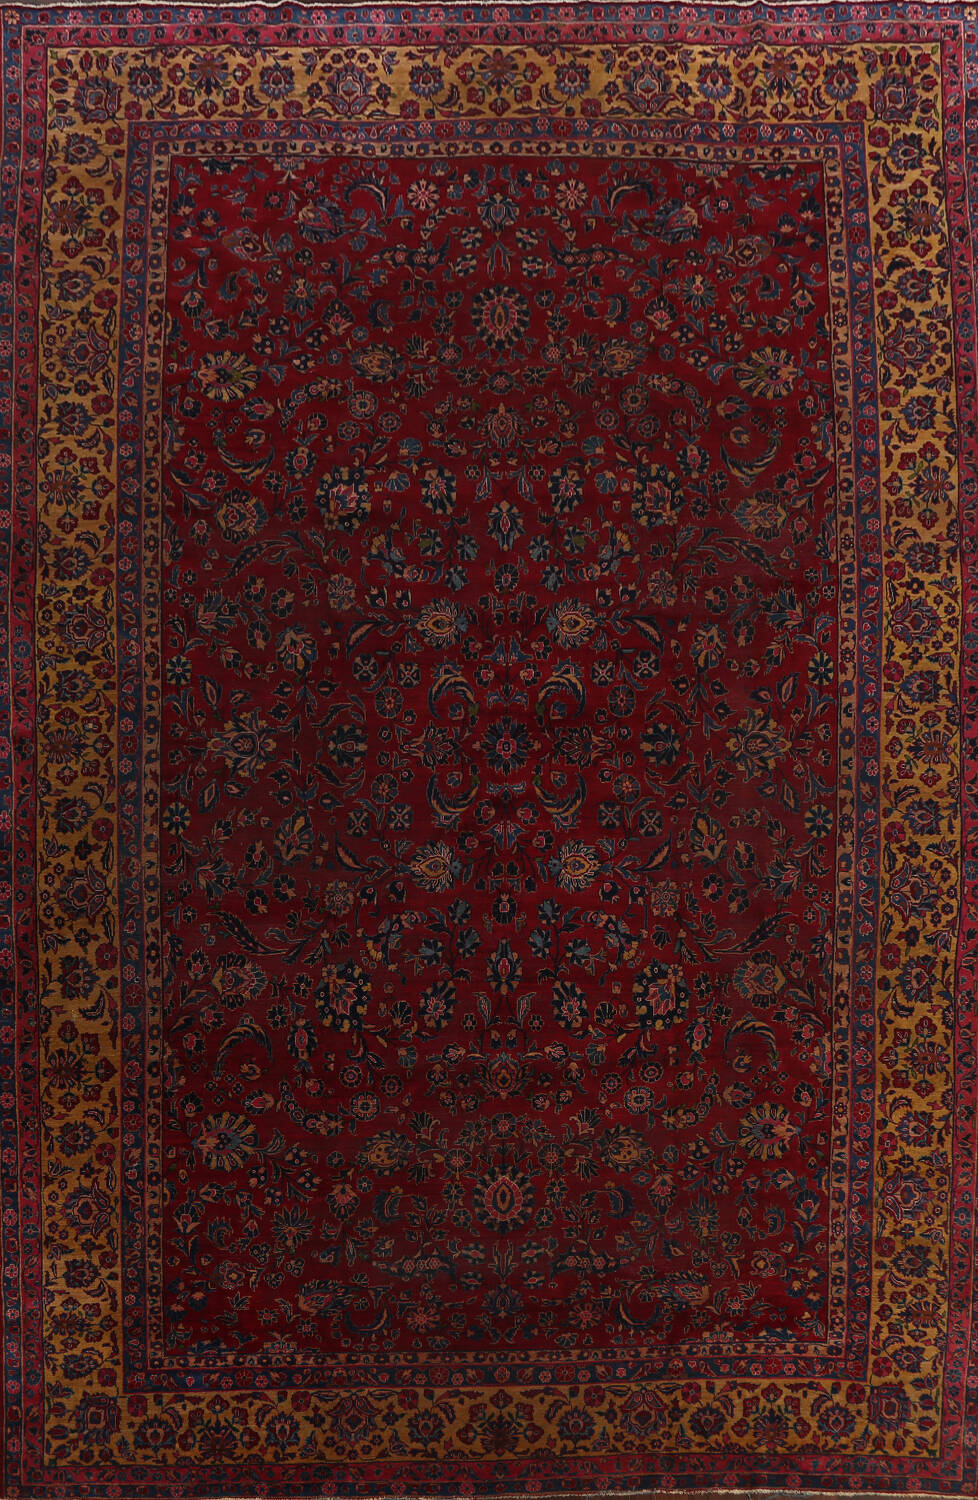 Pre-1900 Antique Vegetable Dye Sarouk Persian Area Rug 11x15 image 1